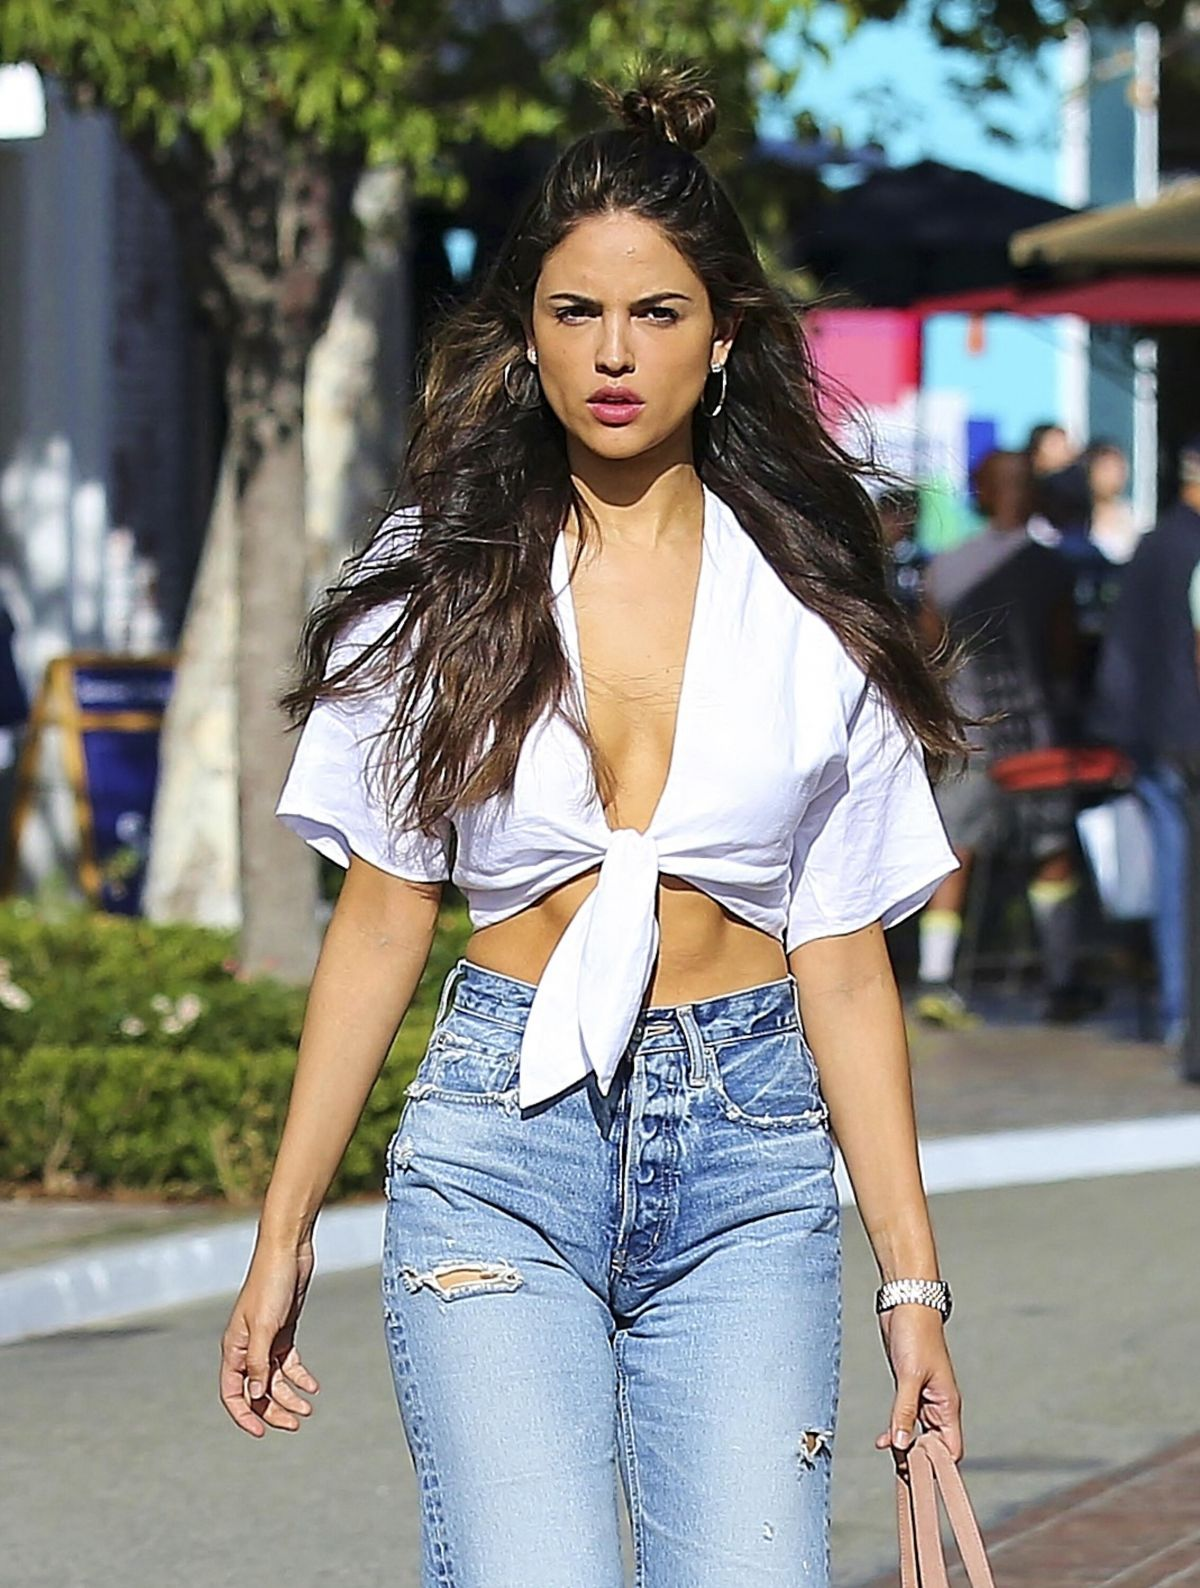 EIZA GONZALEZ in Ripped Jeans Out Shopping in Hollywood 05/17/2017